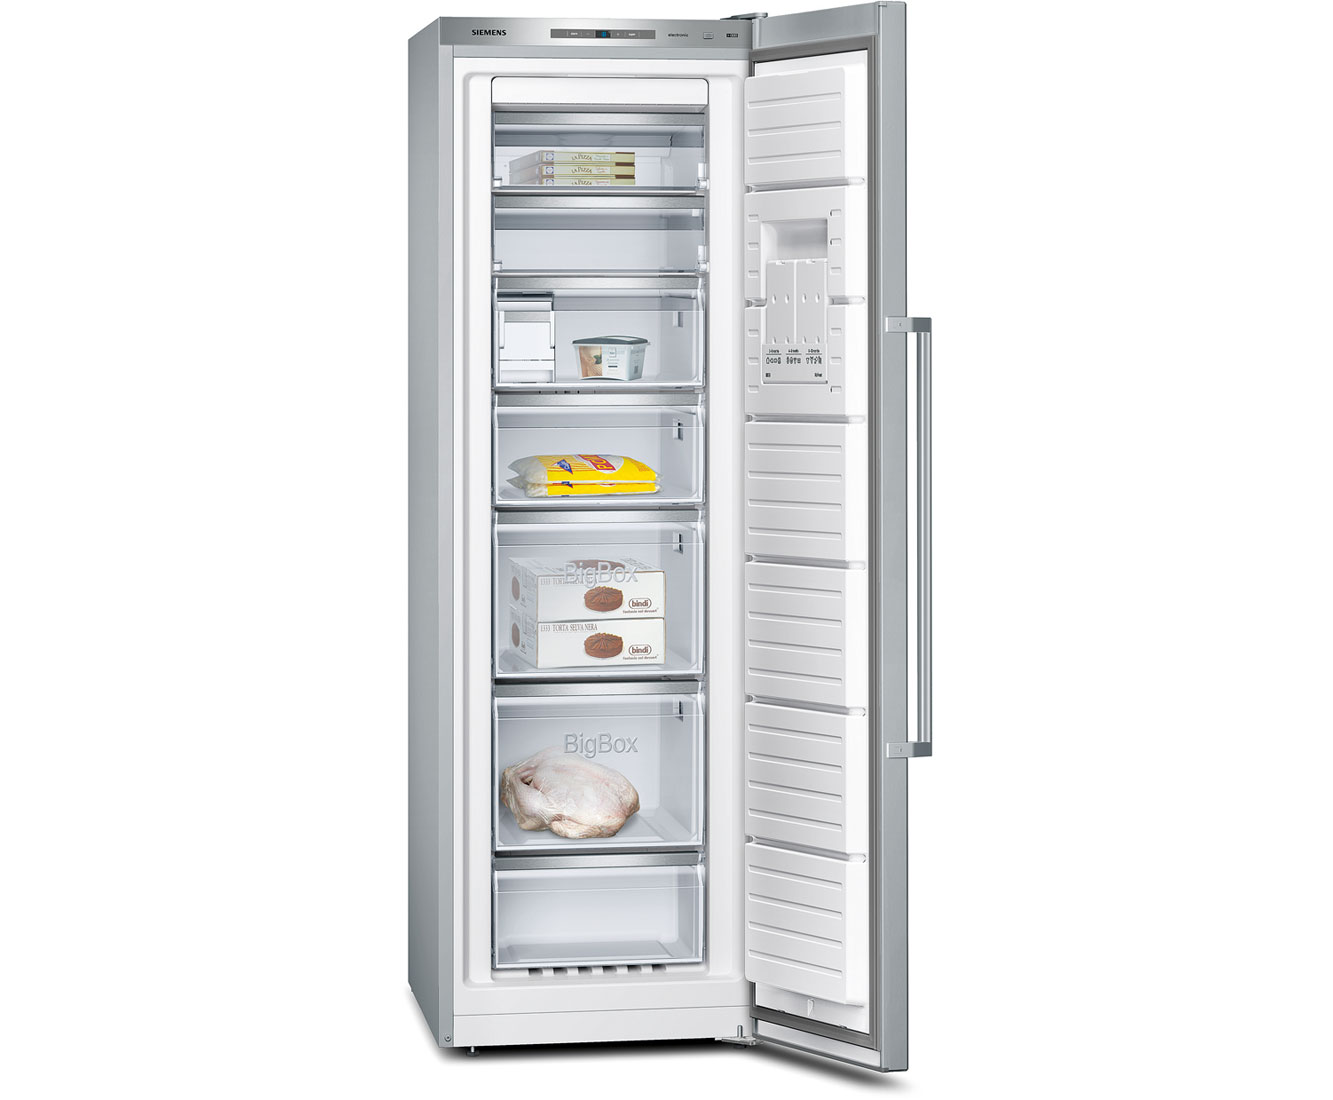 Siemens IQ-500 GS36NAI31 Upright Freezer - Stainless Steel Look